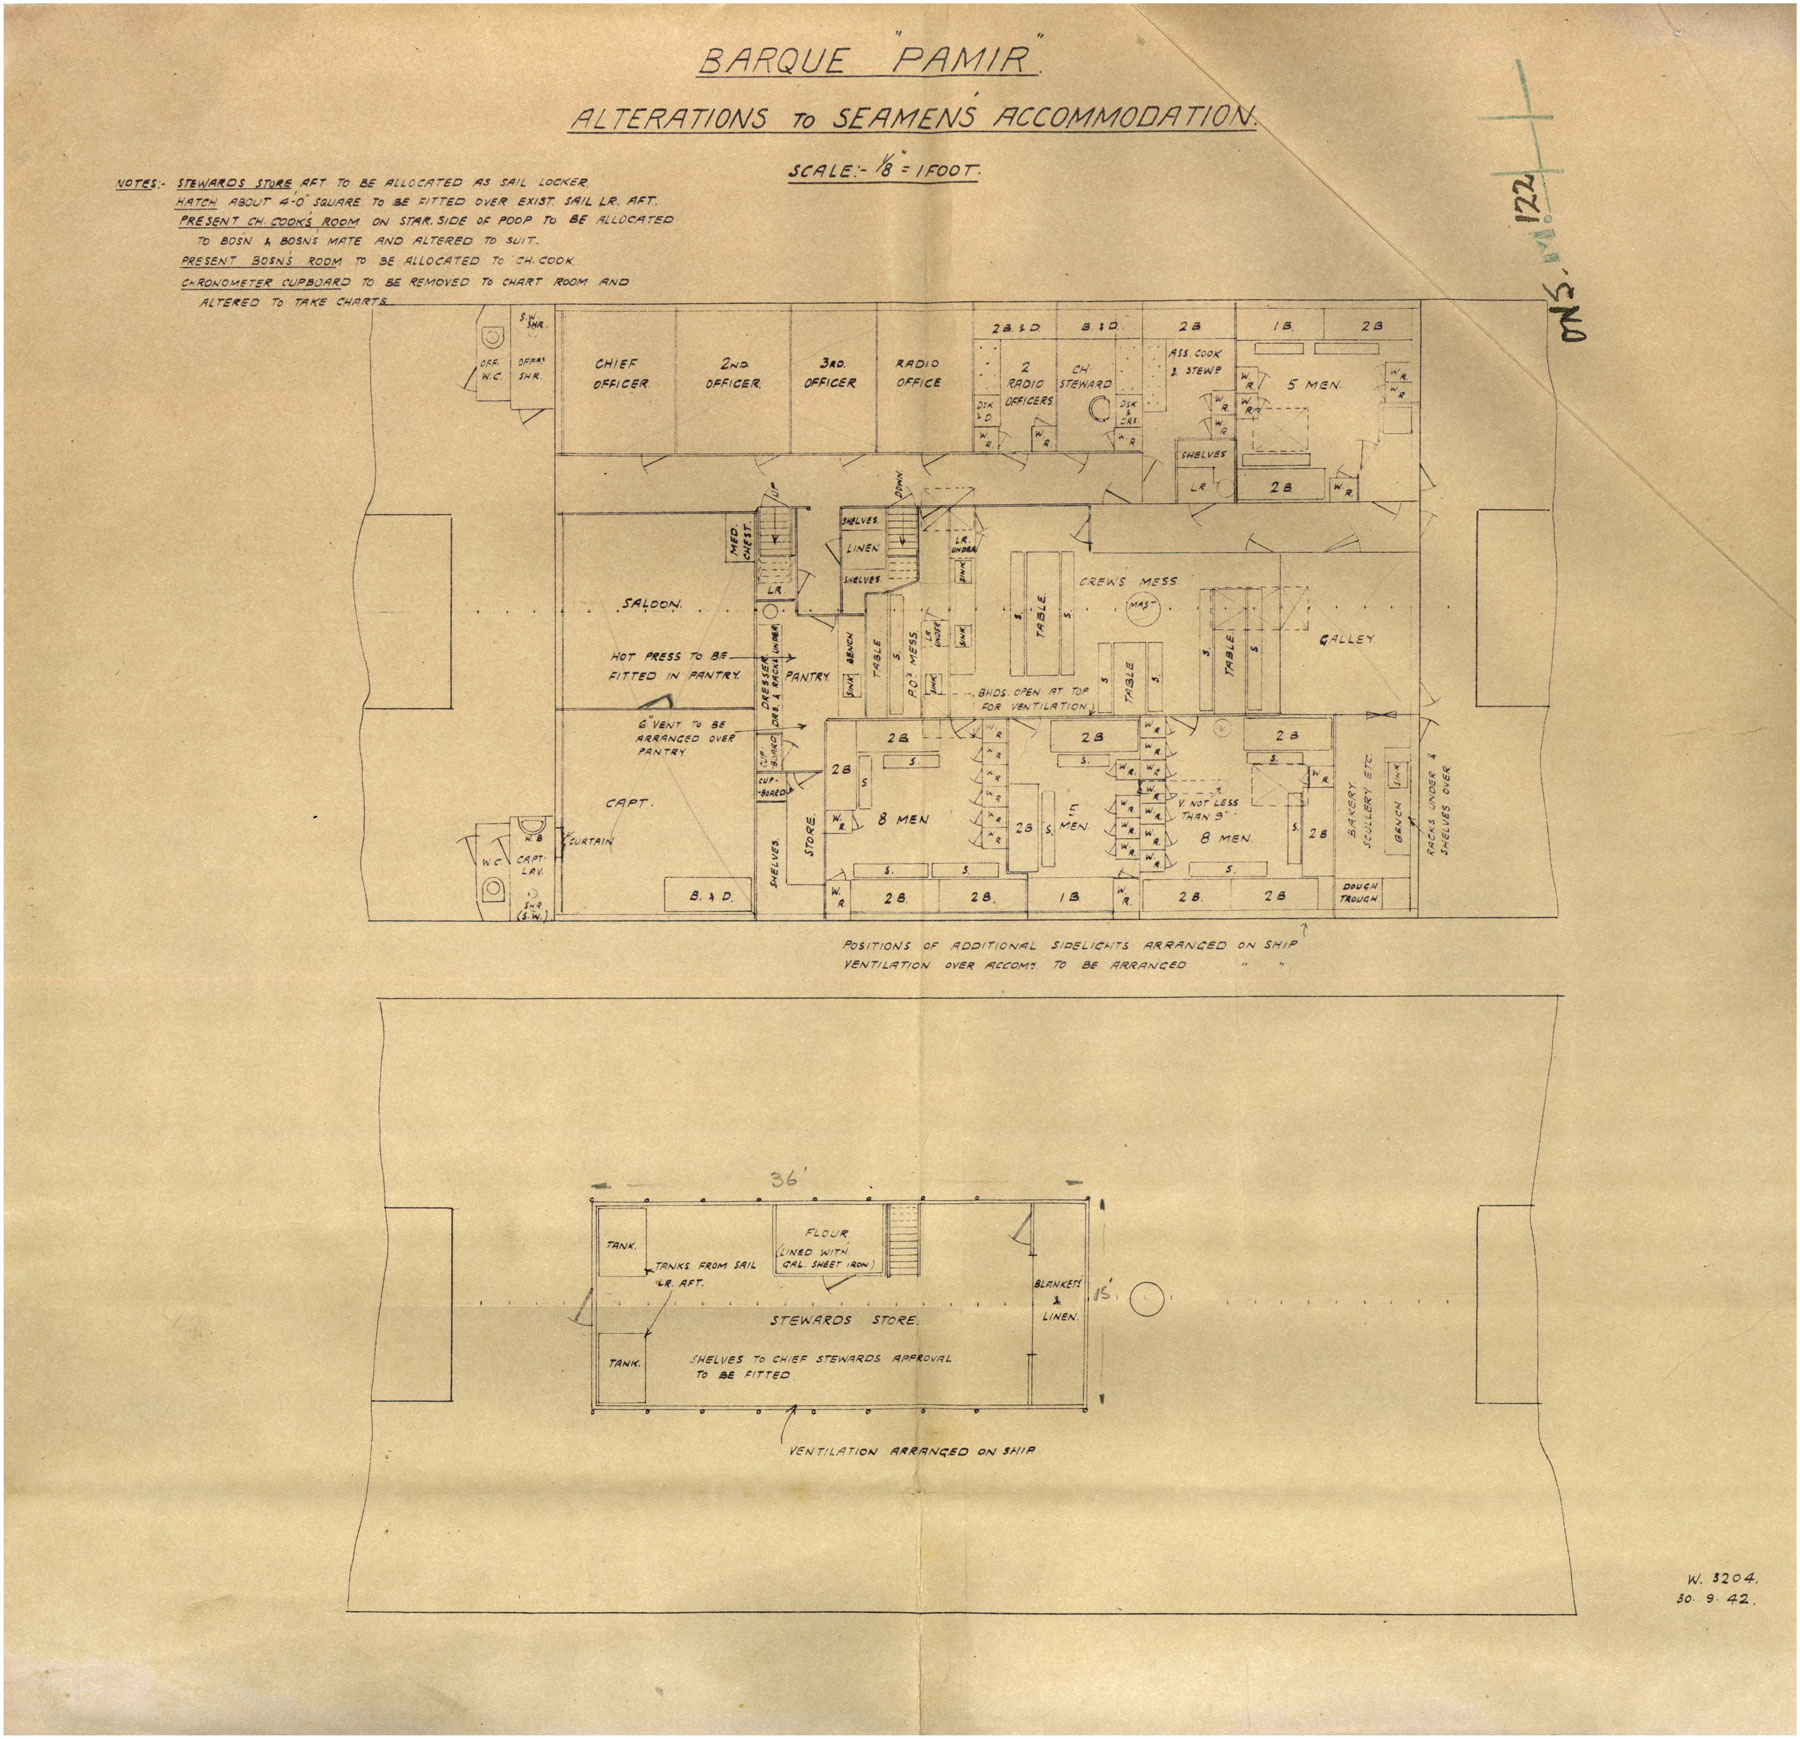 A plan, from September 1942, for alterations to the accommodations aboard the barque Pamir.